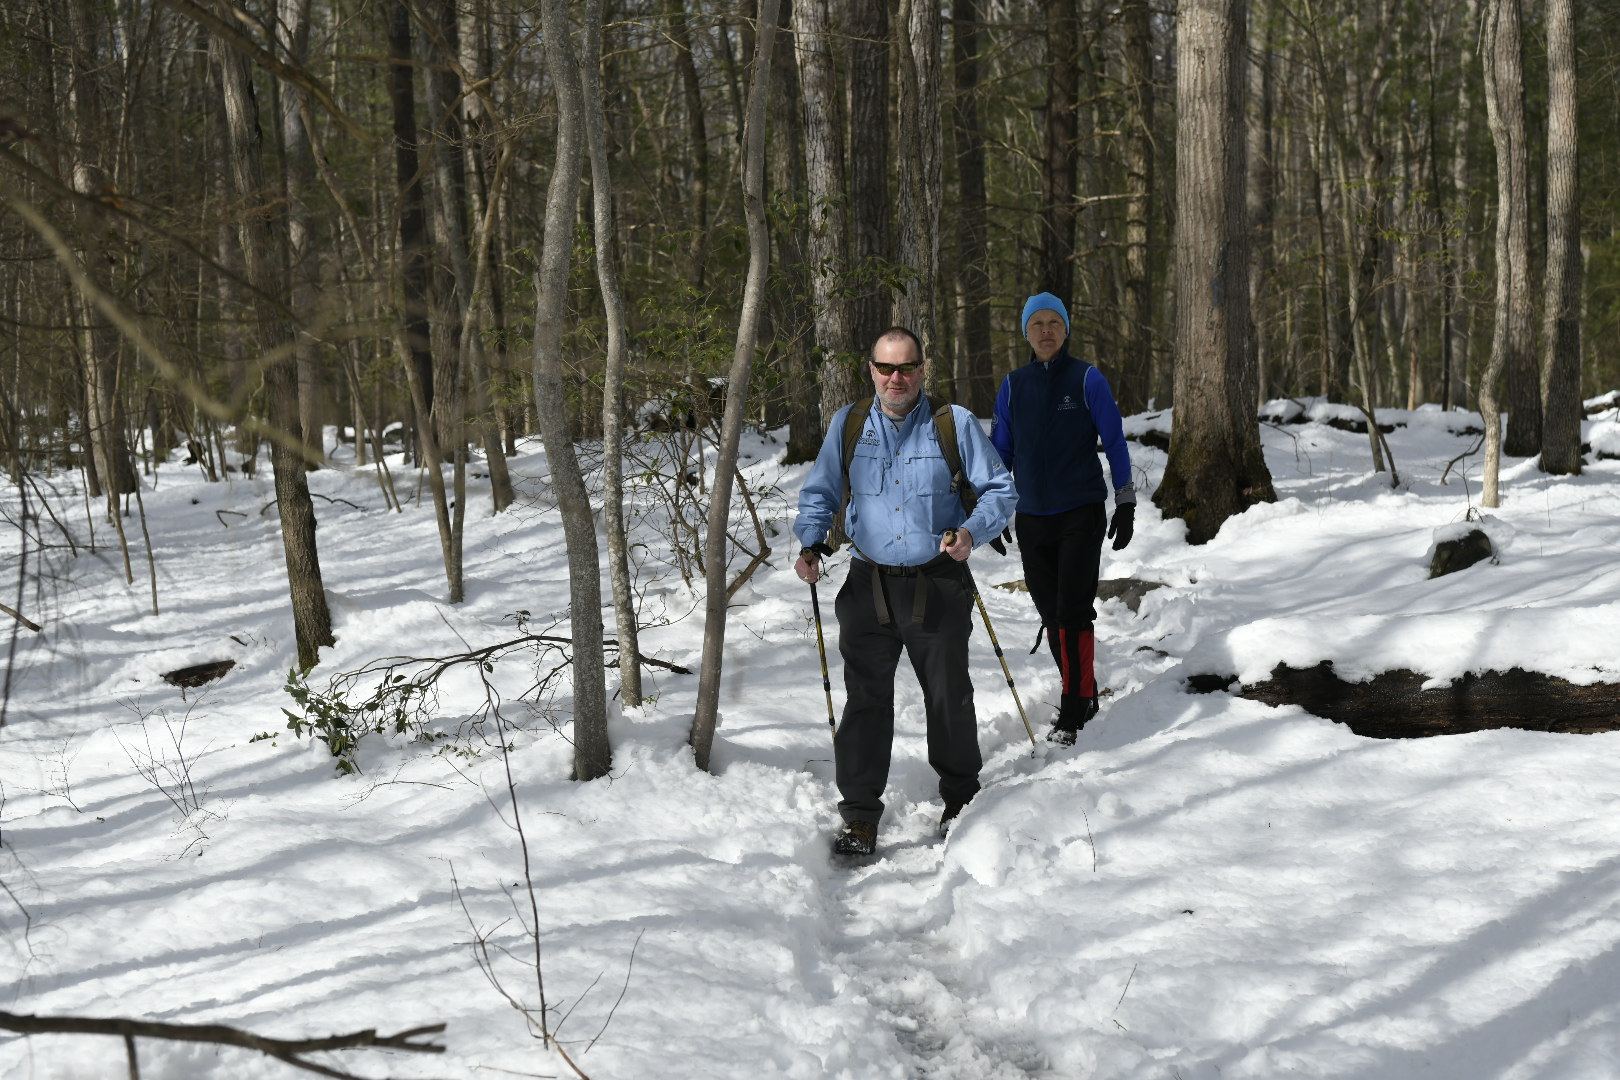 Staff of Appalachian Trail Conservancy from Boiling Springs, PA